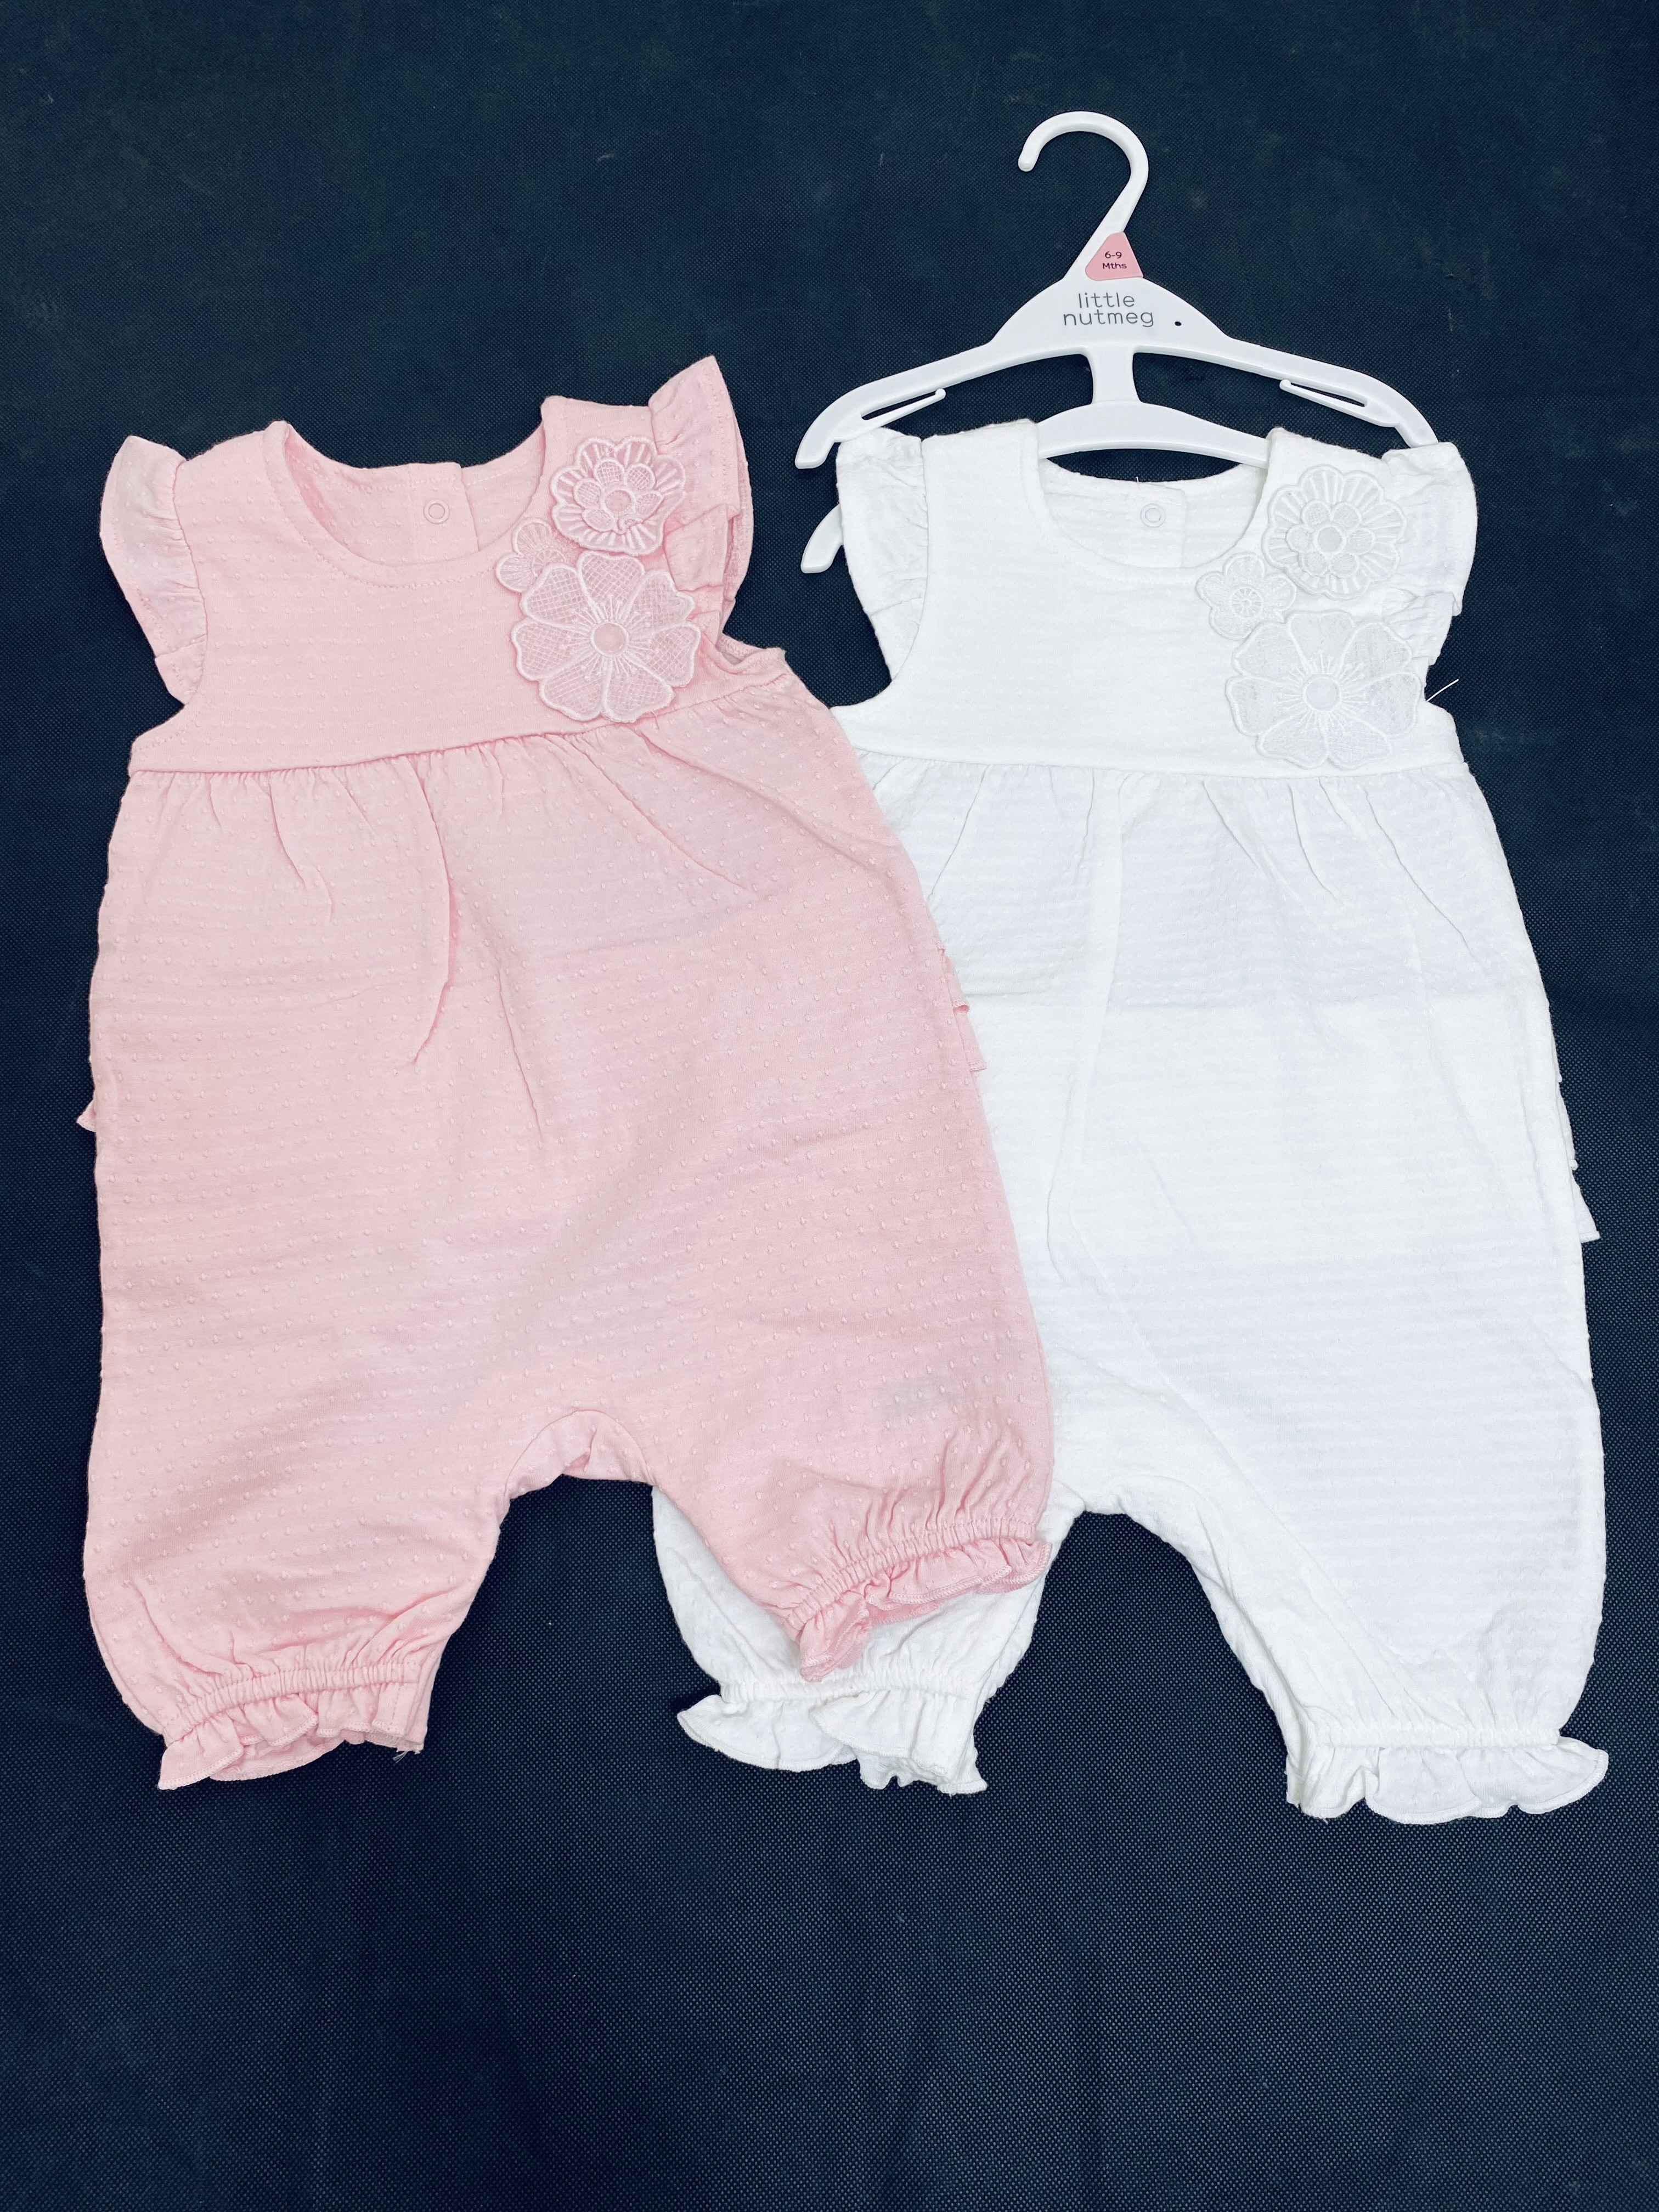 Ex Store Baby Girls 2 Pack of Rompers PACK OF 10